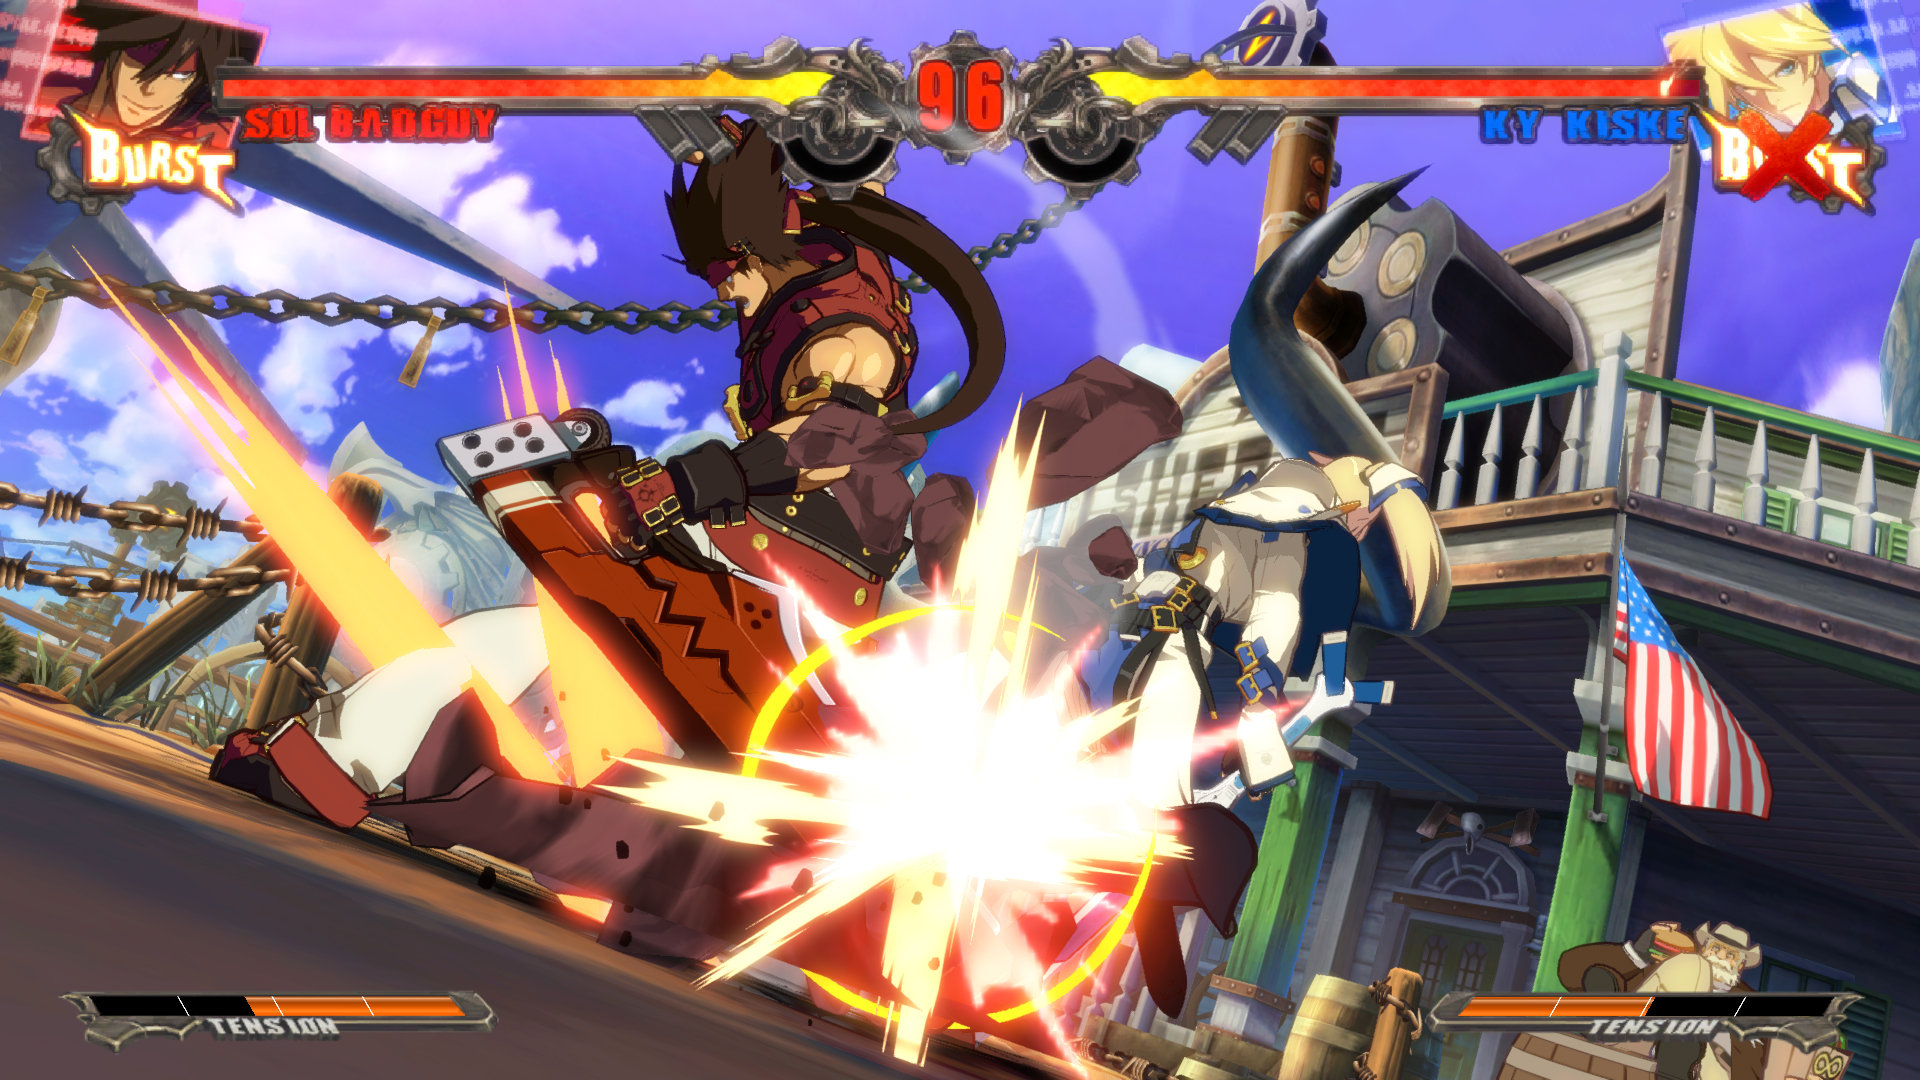 guilty-gear-xrd-screenshot-03-ps4-us-06j